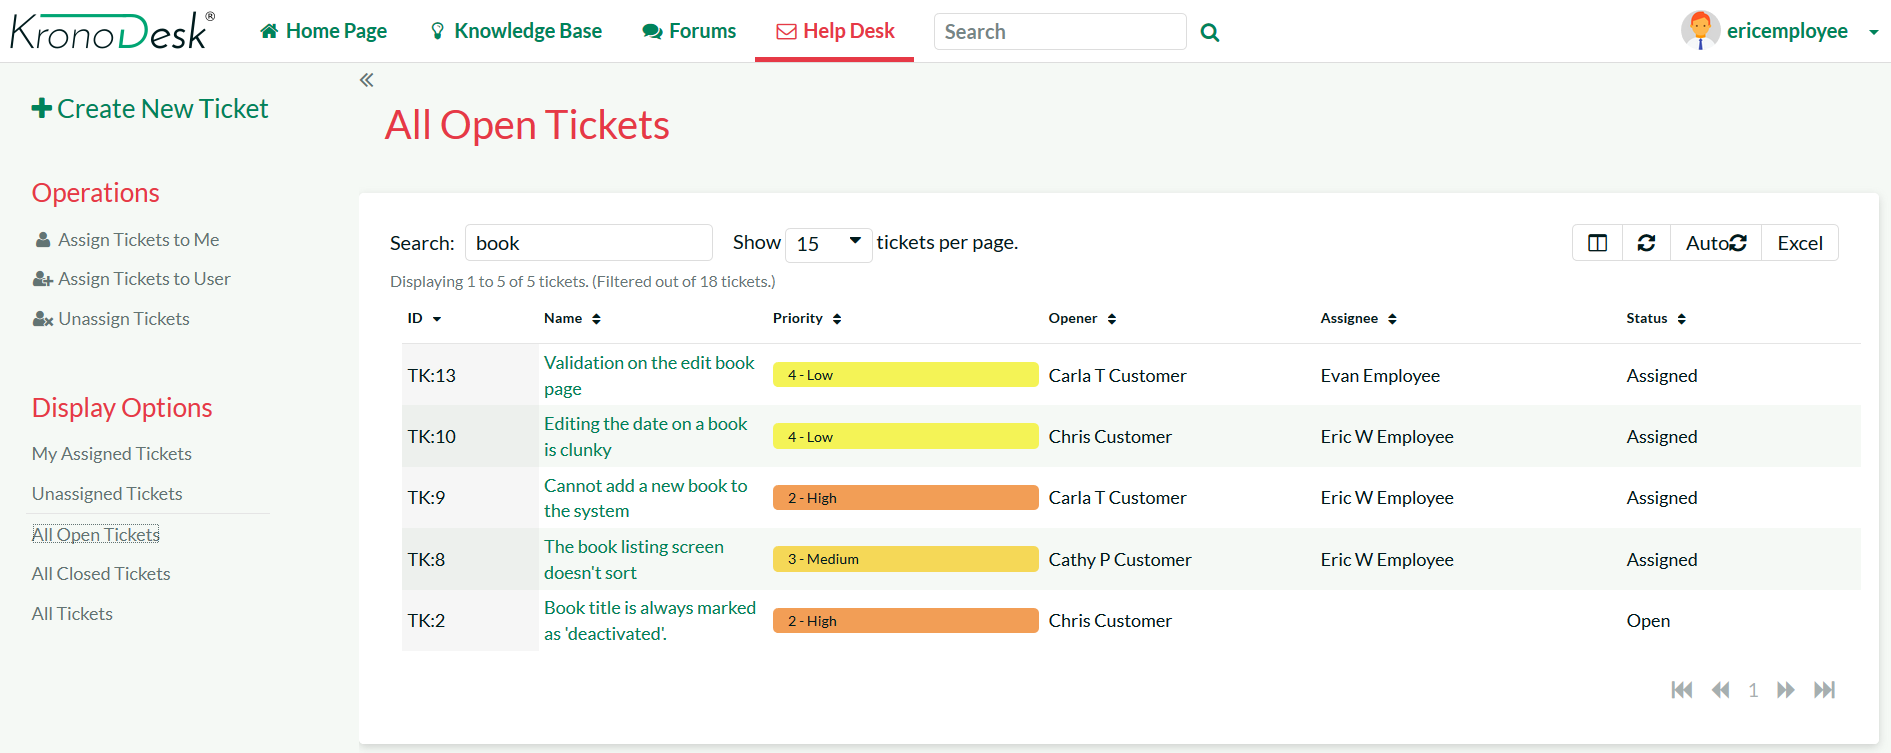 Help desk ticket list for support agents. Lets them view, sort and filter the tickets